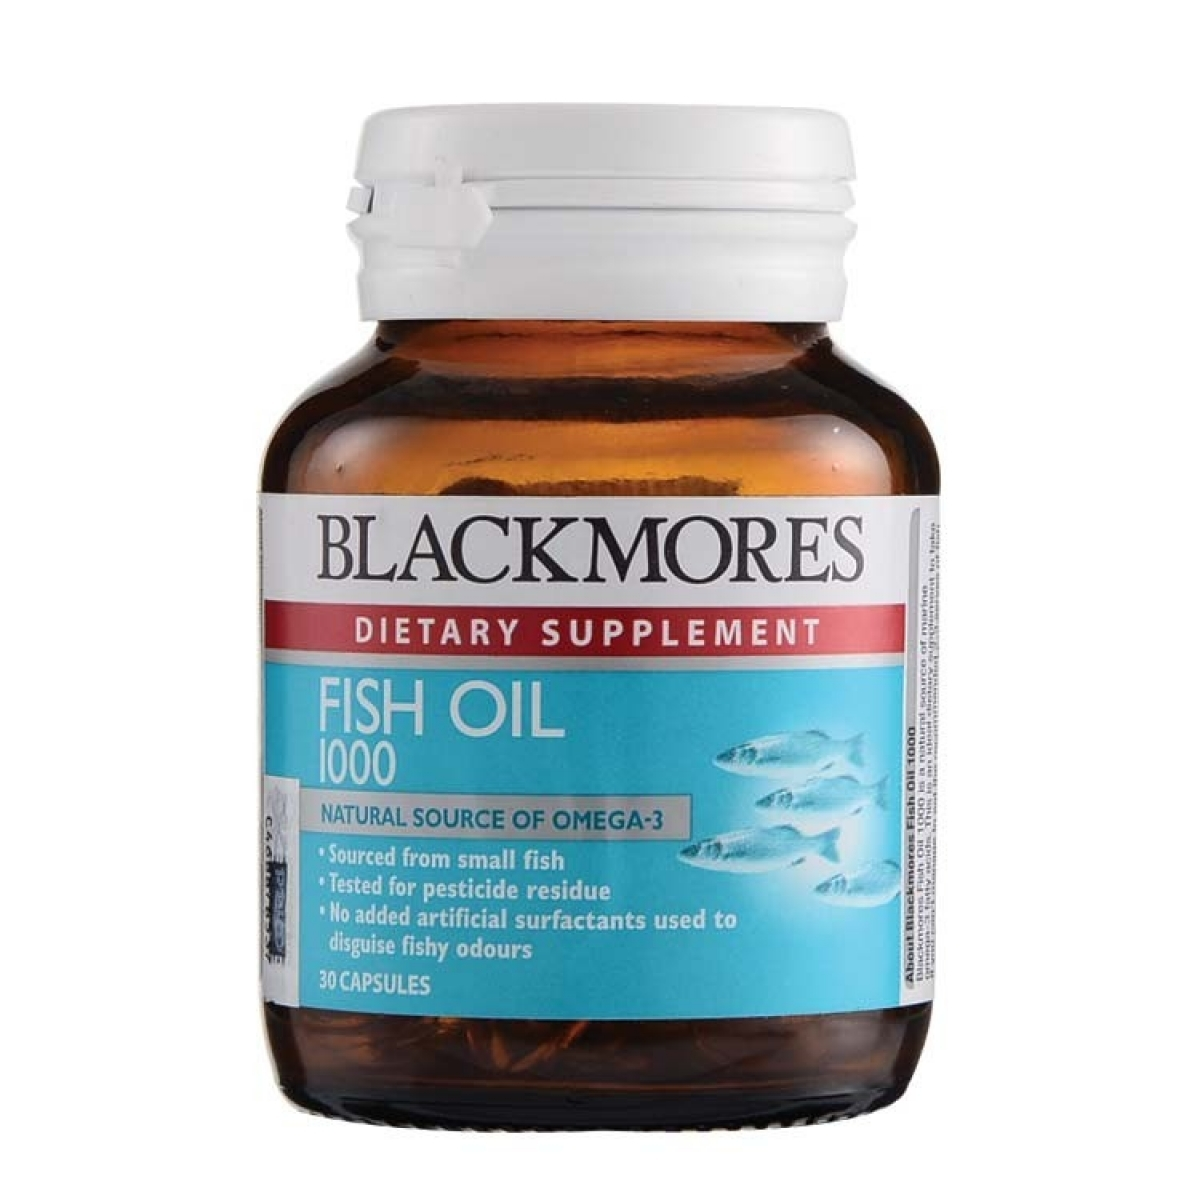 Blackmores fish oil 1000 green wellness for Fish oil pregnancy